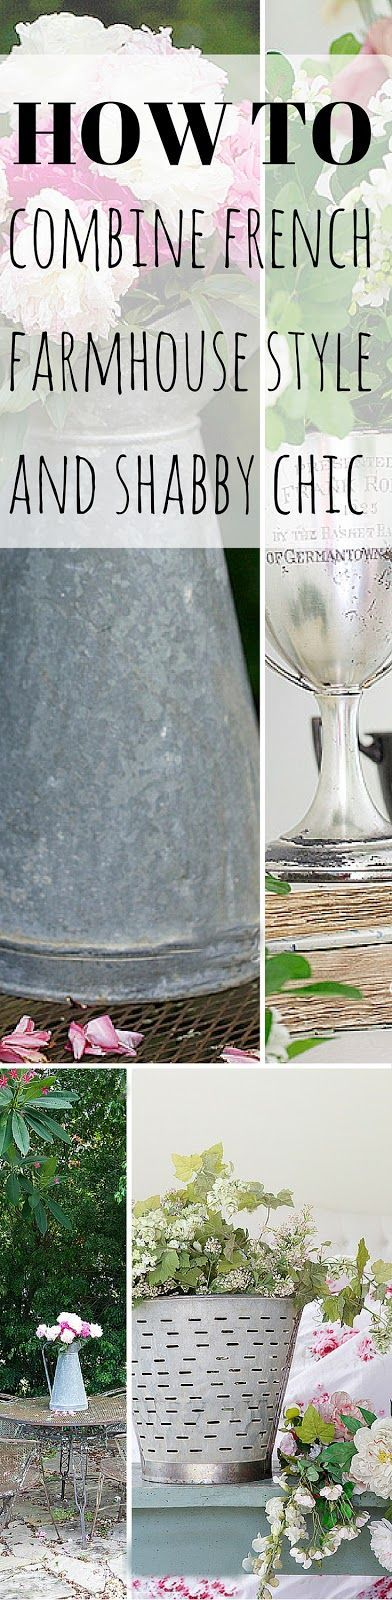 How To Combine French Farmhouse Style and Shabby Chic EASY from Shabbyfufu Blog.